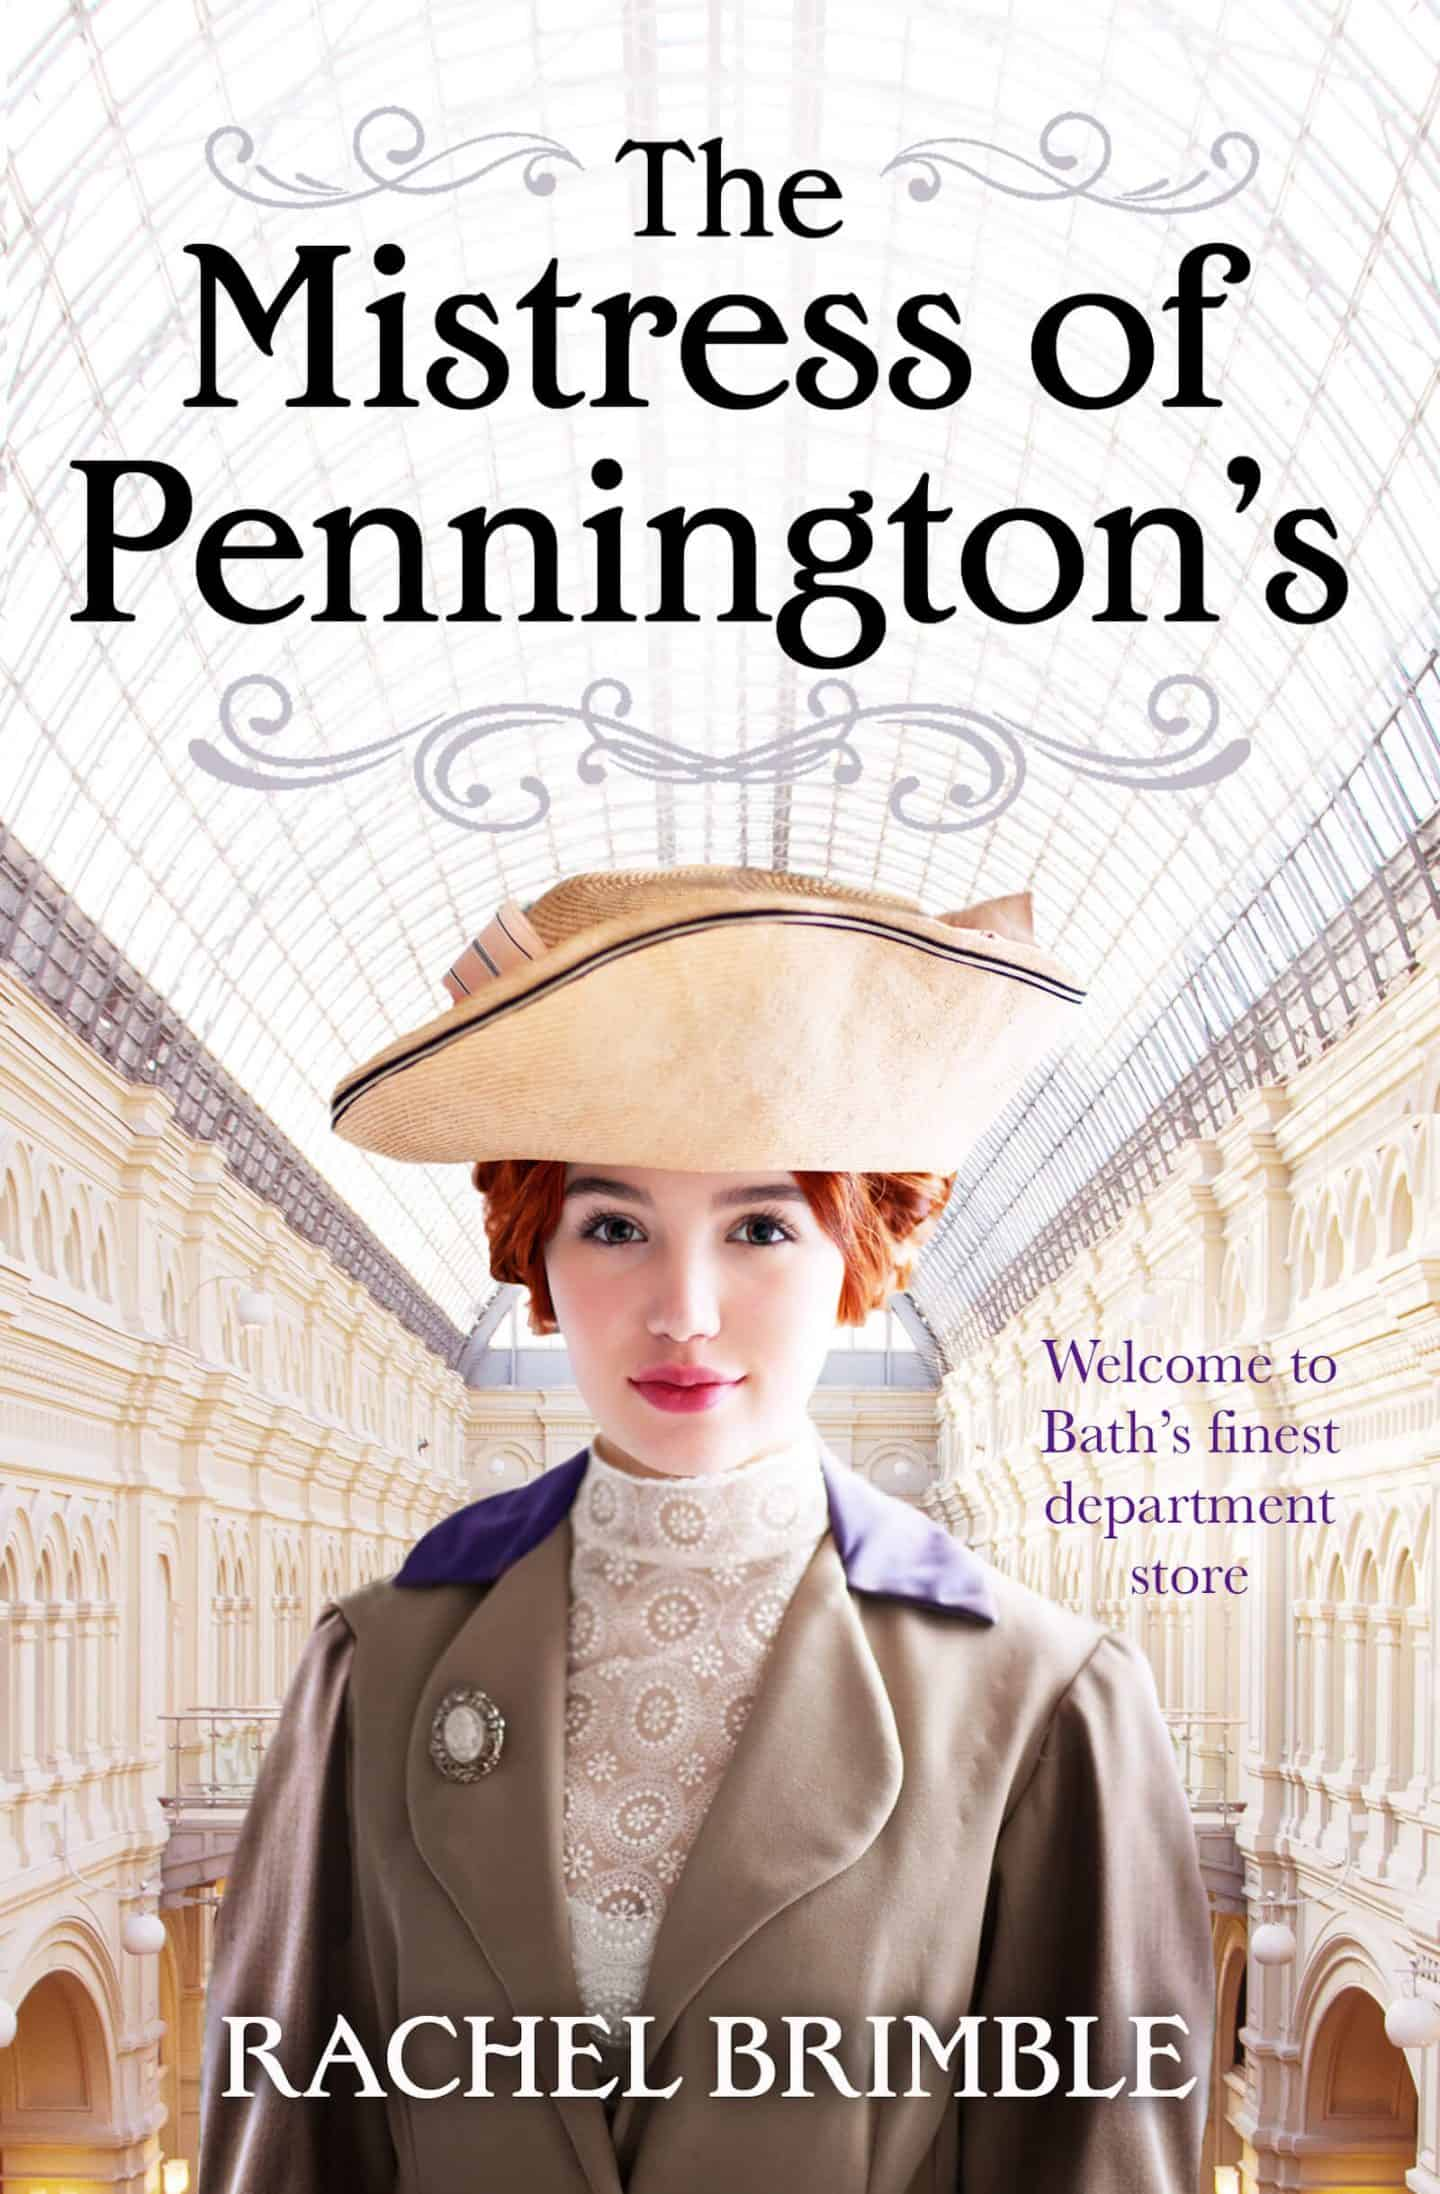 Blog Tour: The Mistress of Pennington's